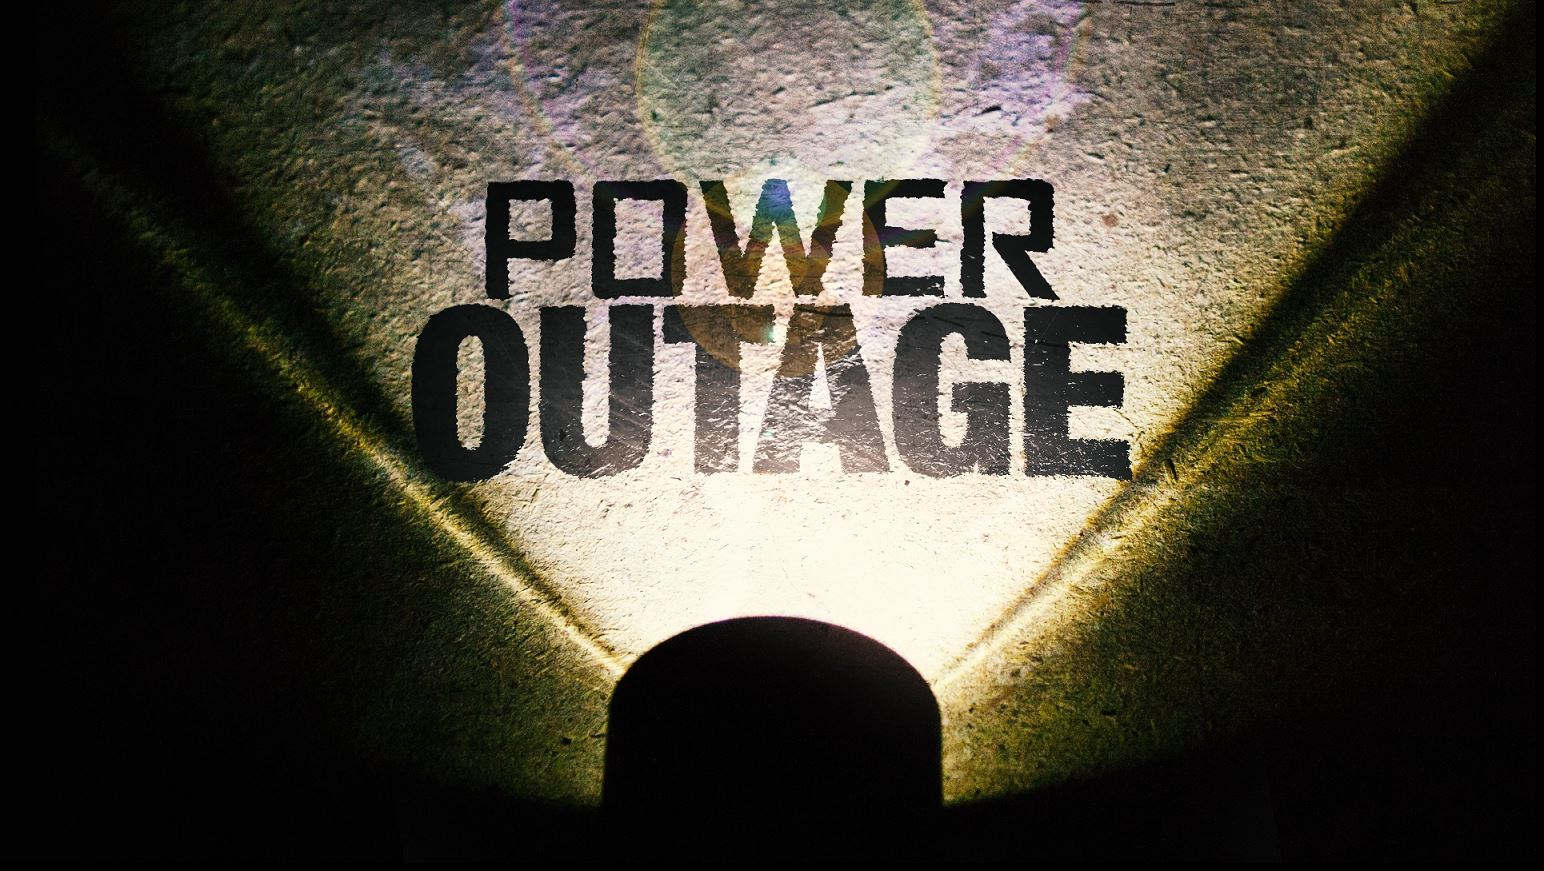 power outage_1536847478770.JPG-873810377-873810377.jpg